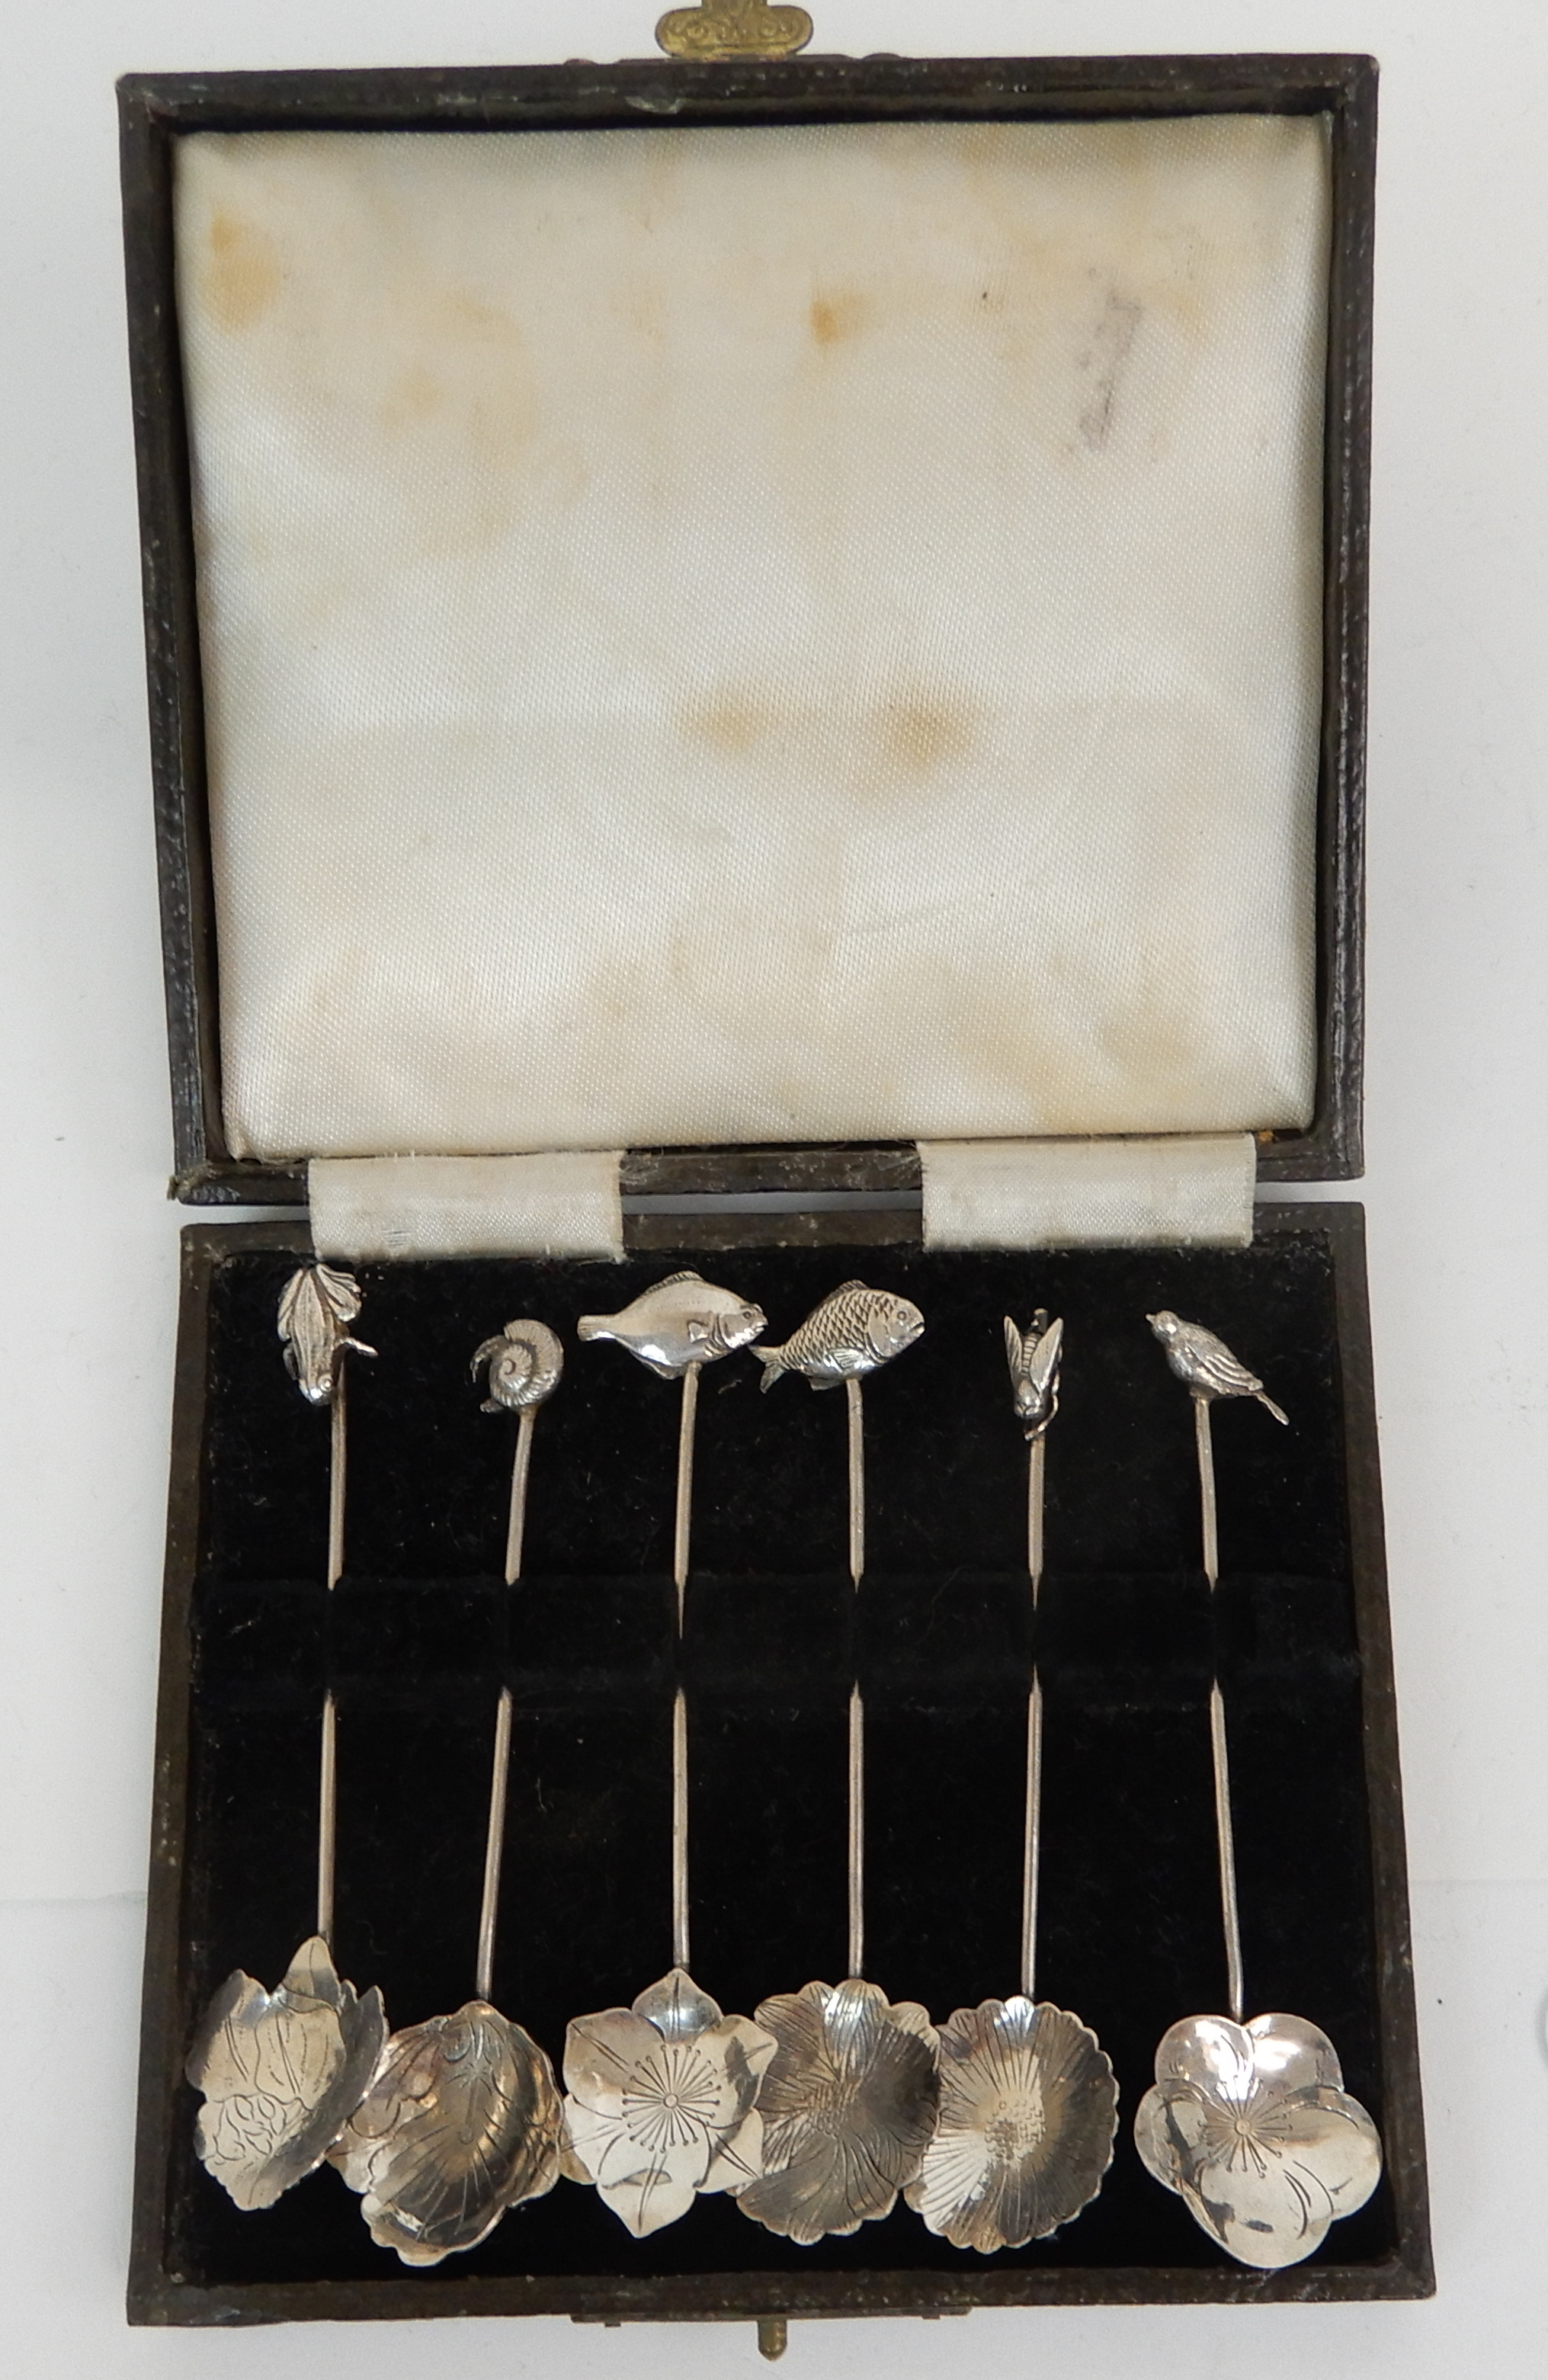 Lot 123 - A CASED SET OF SIX NOVELTY SILVER COFFEE SPOONS by Liberty & Company, London 1897, the bowls